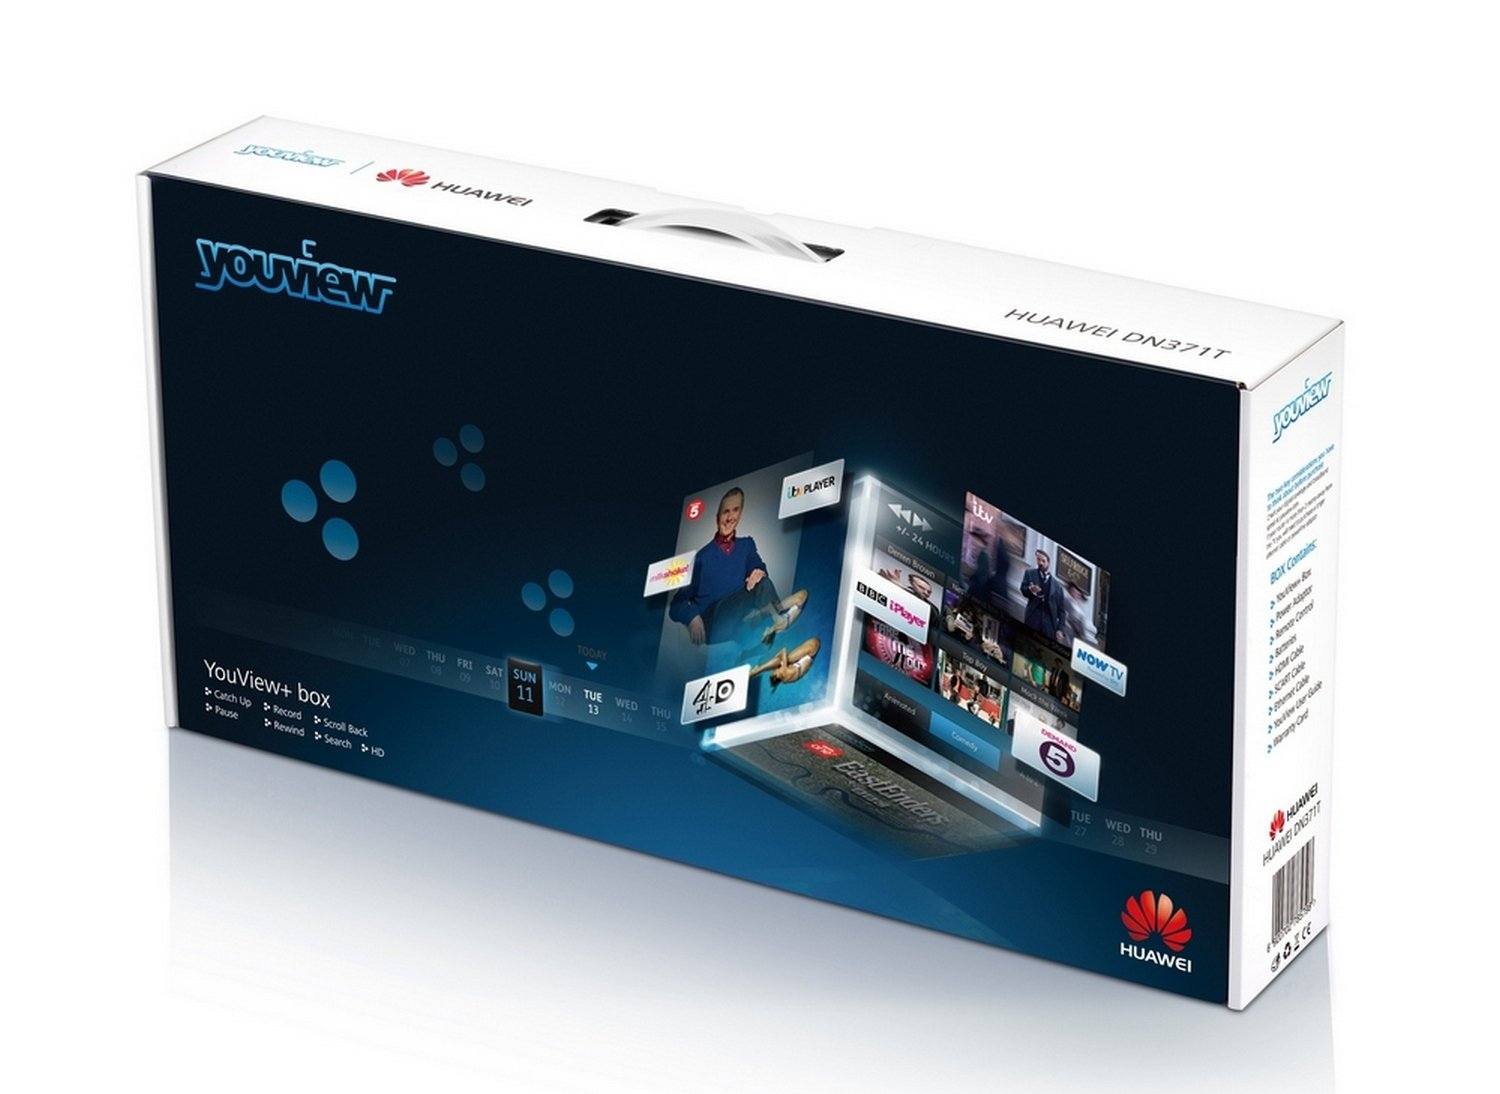 Huawei DN371T YouView Set Top Box (STB) (500Gb Recorder with Dual Tuners,  HD Freeview and 7 Day Catch Up TV, 1GB RAM, PVR)